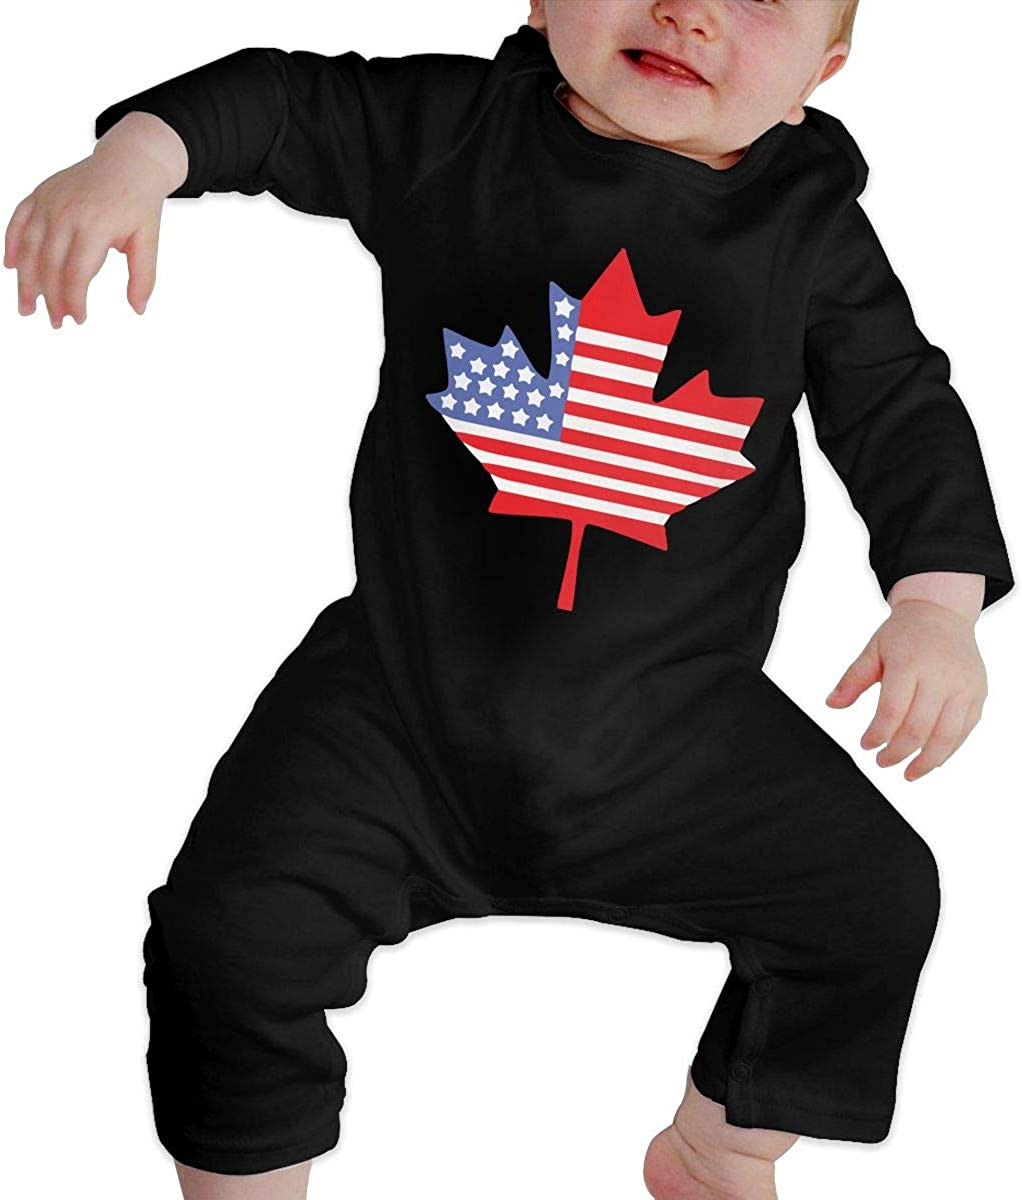 Canadian American Flag Organic One-Piece Bodysuits Coverall Outfits BKNGDG8Q Toddler Baby Boy Romper Jumpsuit